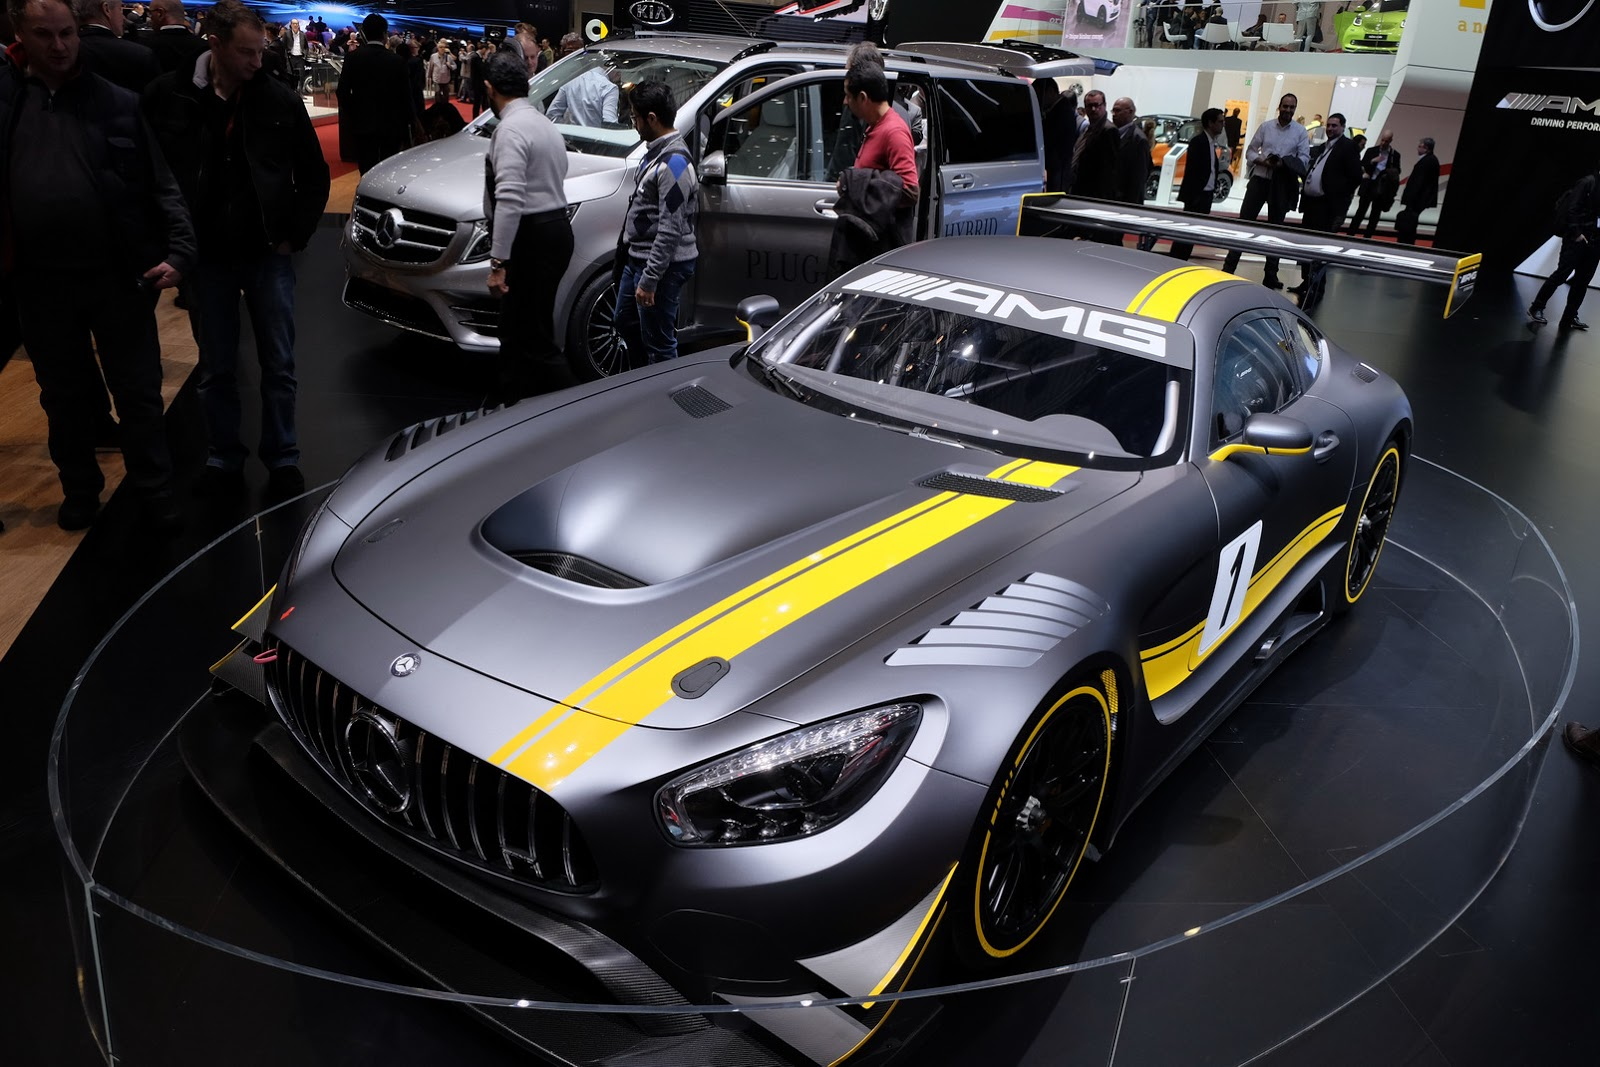 mercedes amg 39 s gt3 racer could inspire a production model carscoops. Black Bedroom Furniture Sets. Home Design Ideas